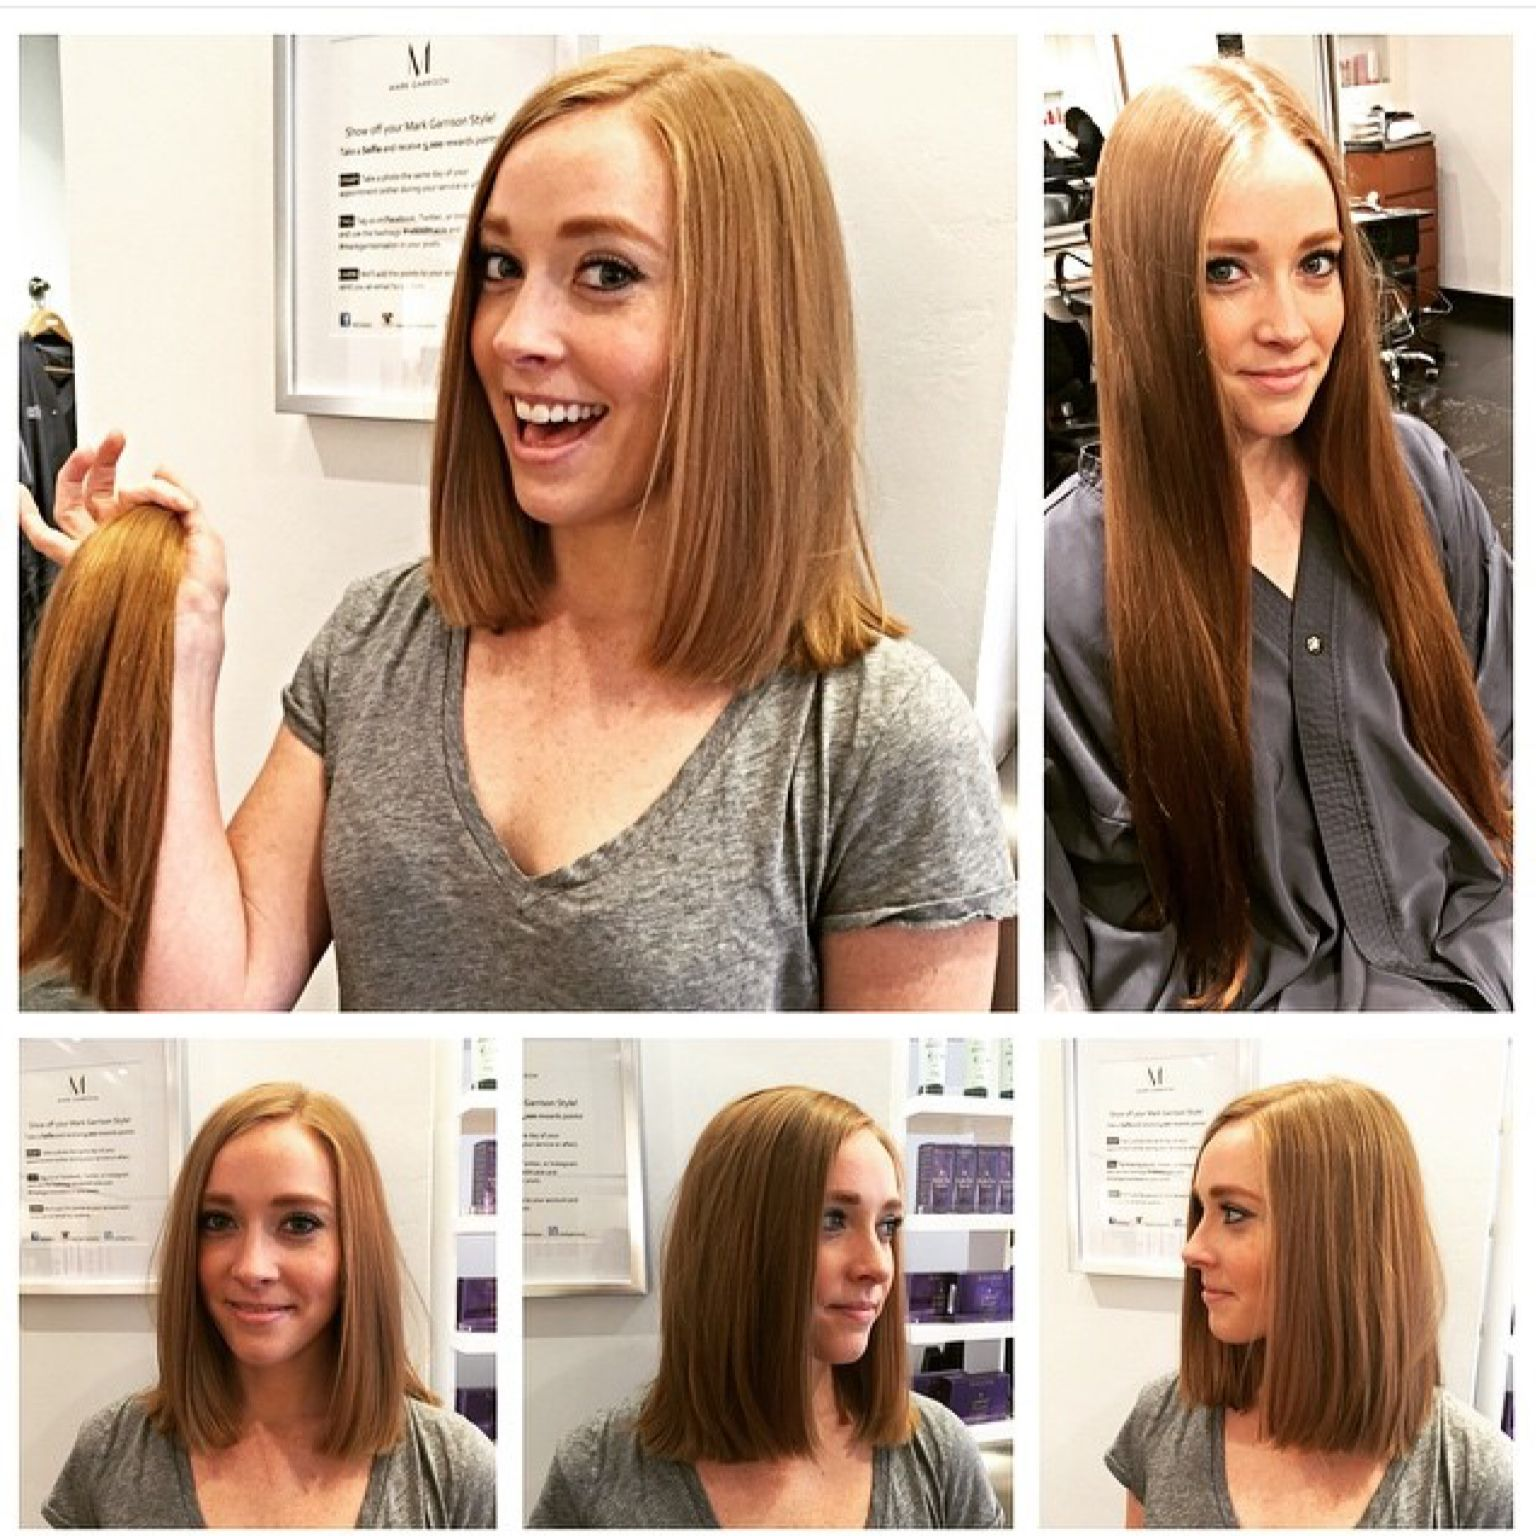 Pantenes Beautiful Lengths Hair Donation By Mackenzie For Mark